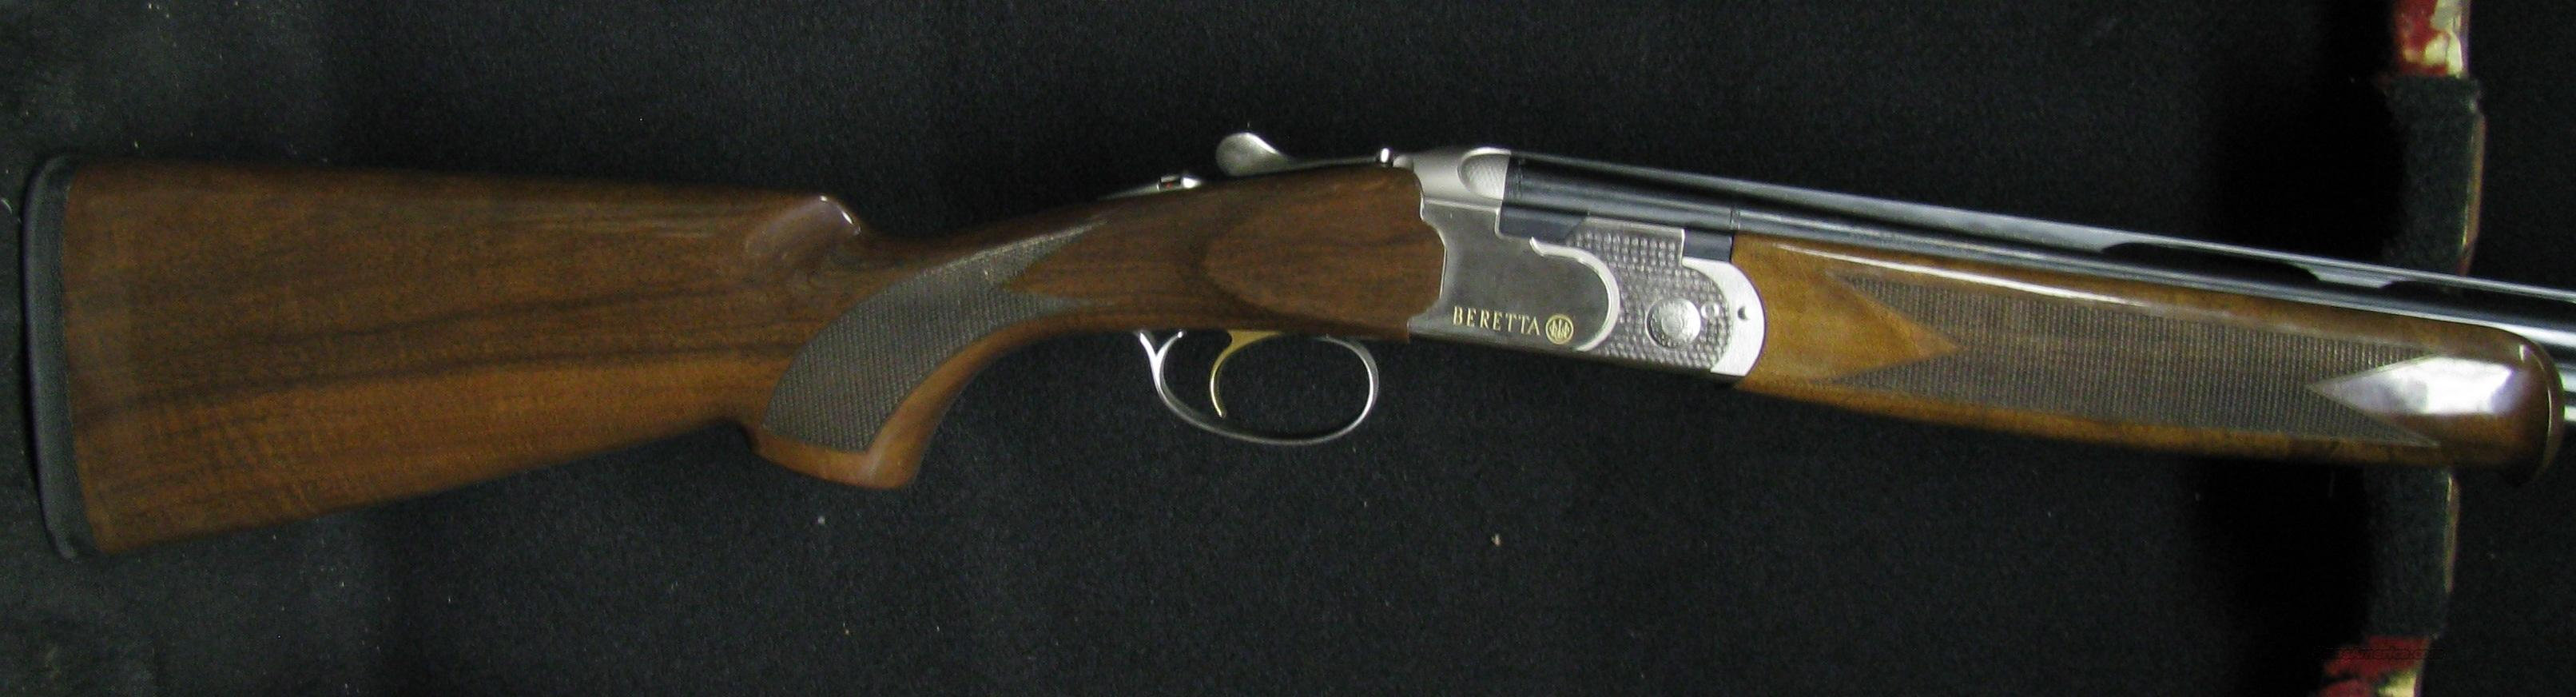 "Beretta 686 White Onyx 28 gauge, 28"" barrels, new in case with chokes  Guns > Shotguns > Beretta Shotguns > O/U > Hunting"